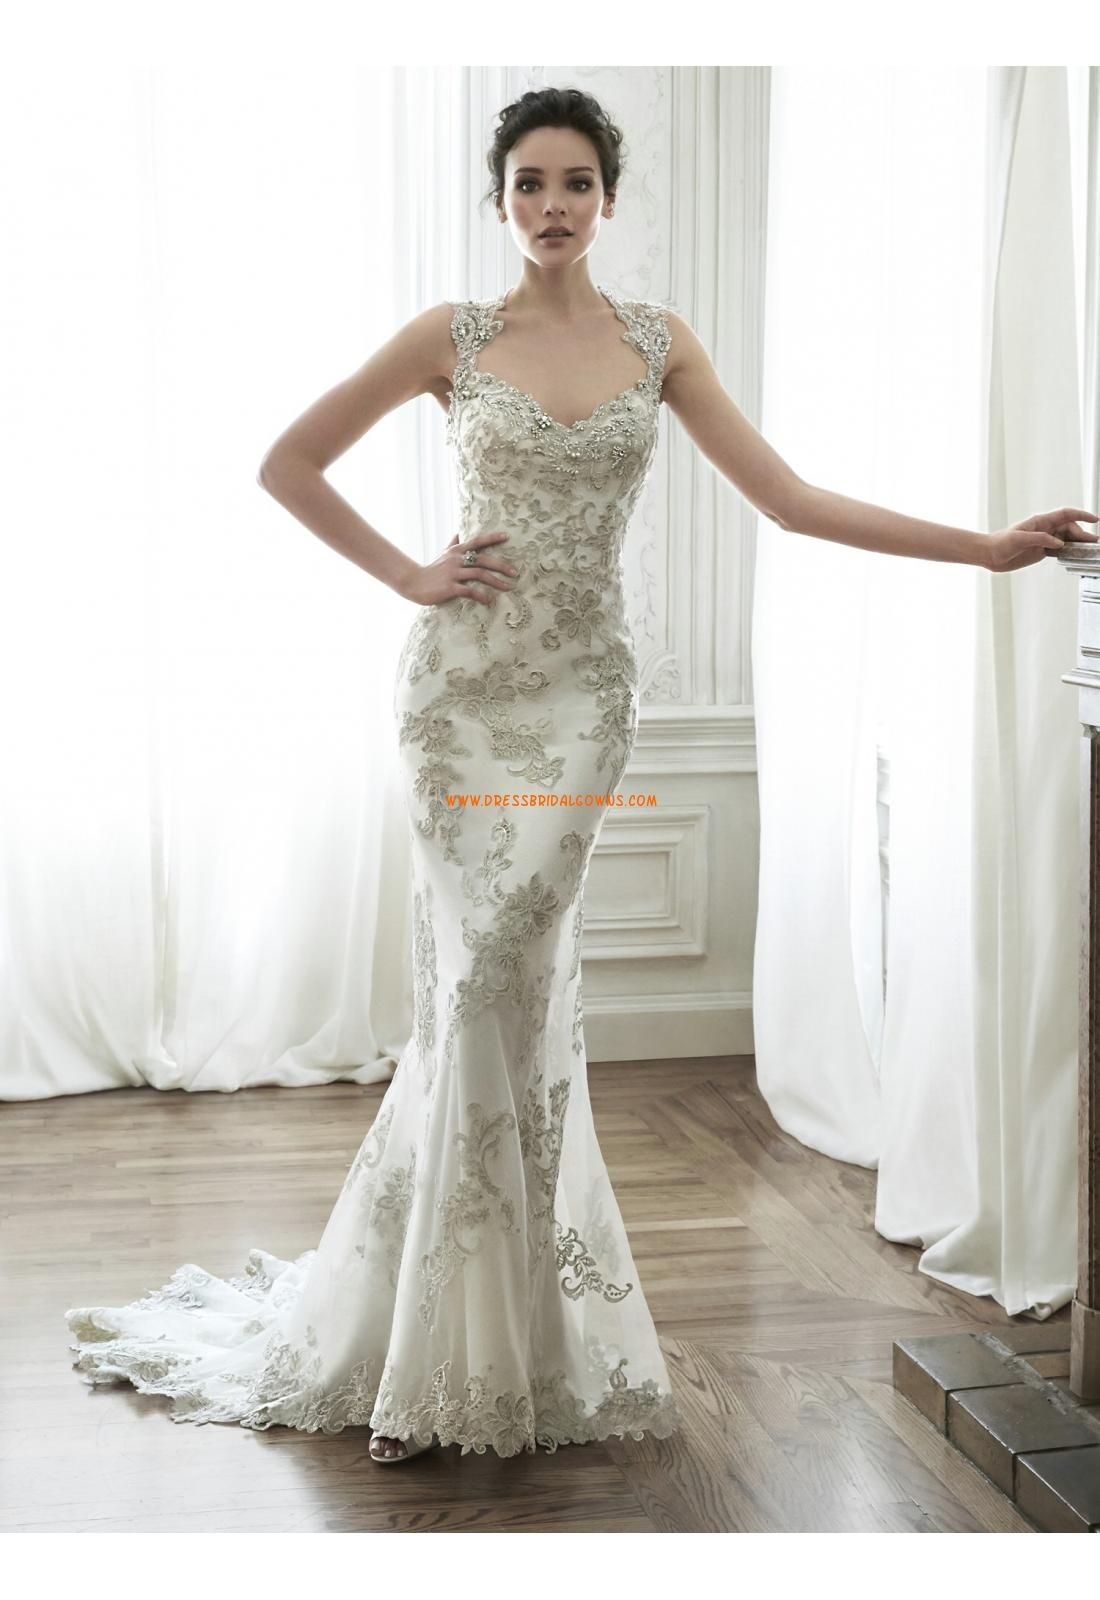 Maggie Sottero Mermaid Backless Wedding Dresses - Style Jade 5MD056 ...